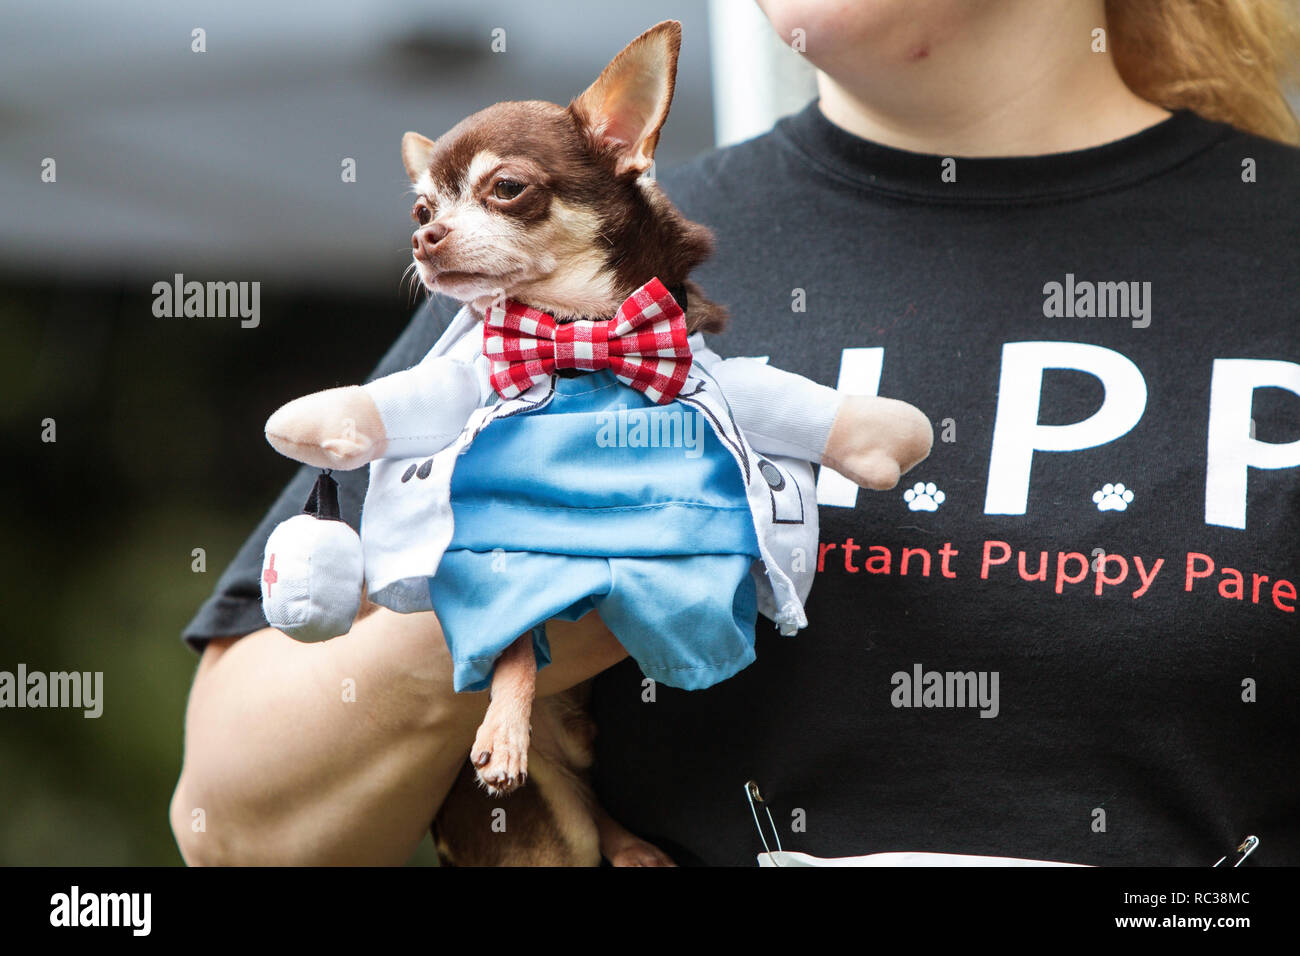 A woman carries a small dog dressed in a doctor costume with a bowtie, as she walks before the judges at Doggy Con, a dog costume contest in Atlanta. - Stock Image